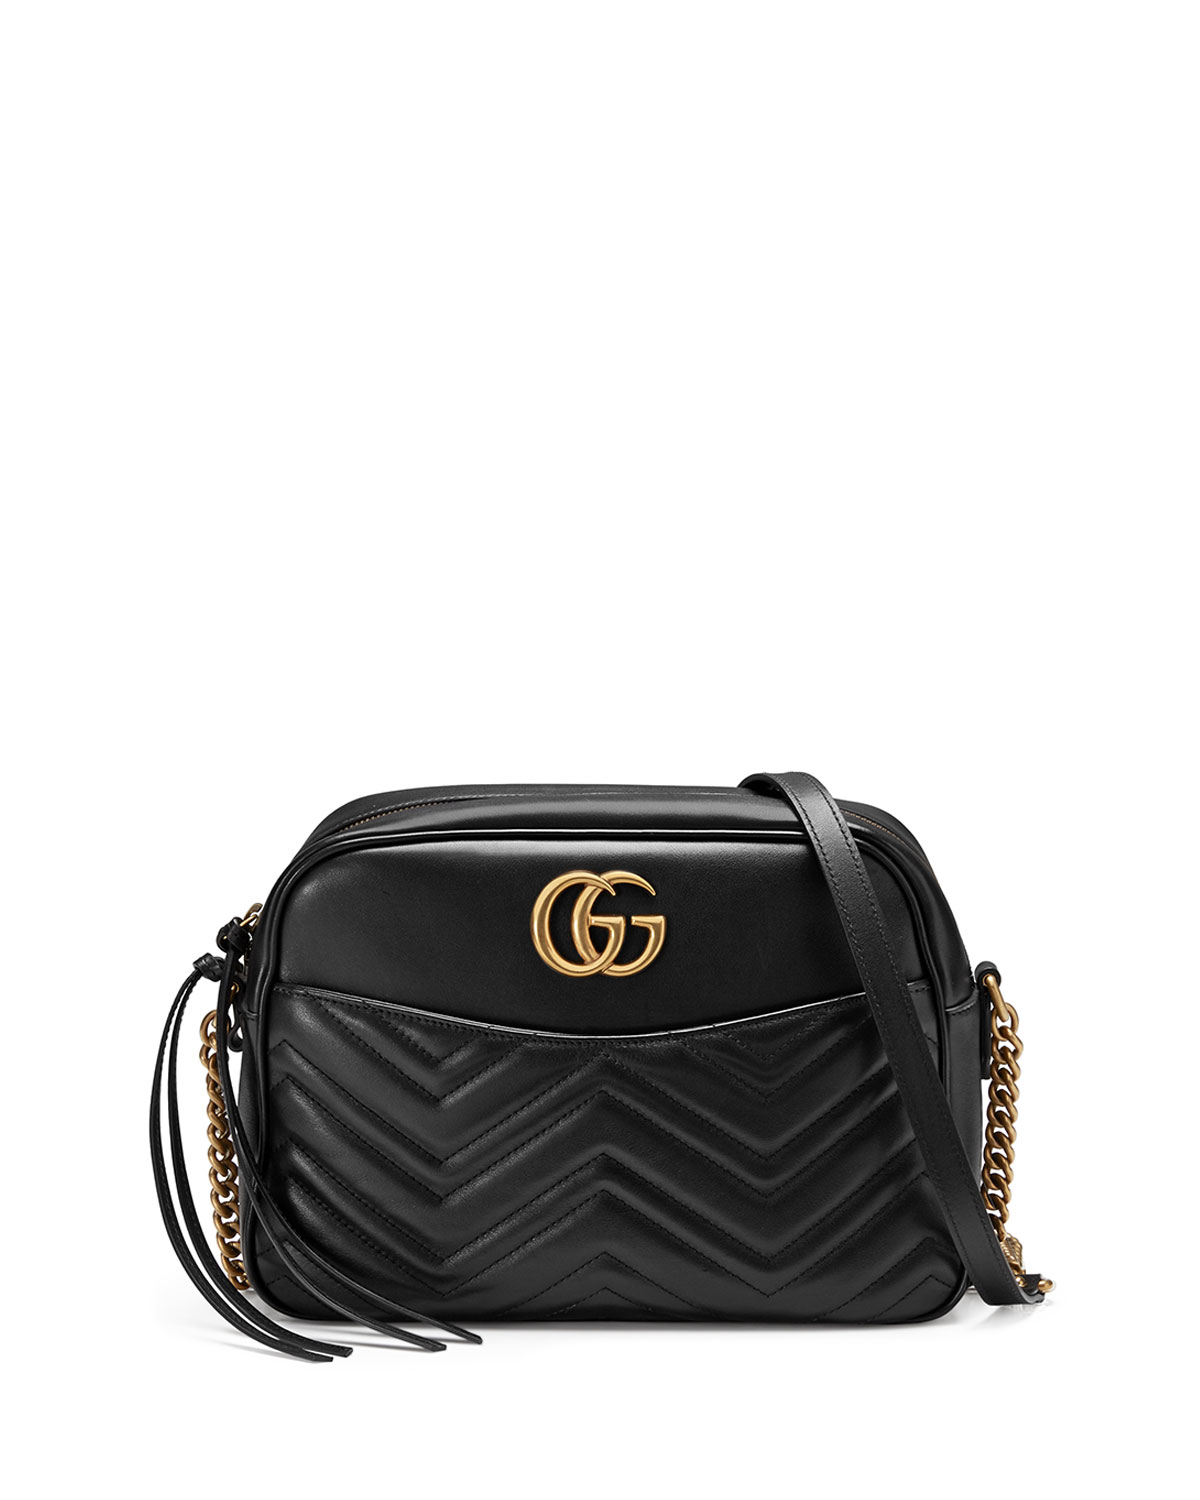 c5f2b5fca8f4c Gucci GG Marmont 2.0 Medium Quilted Camera Bag